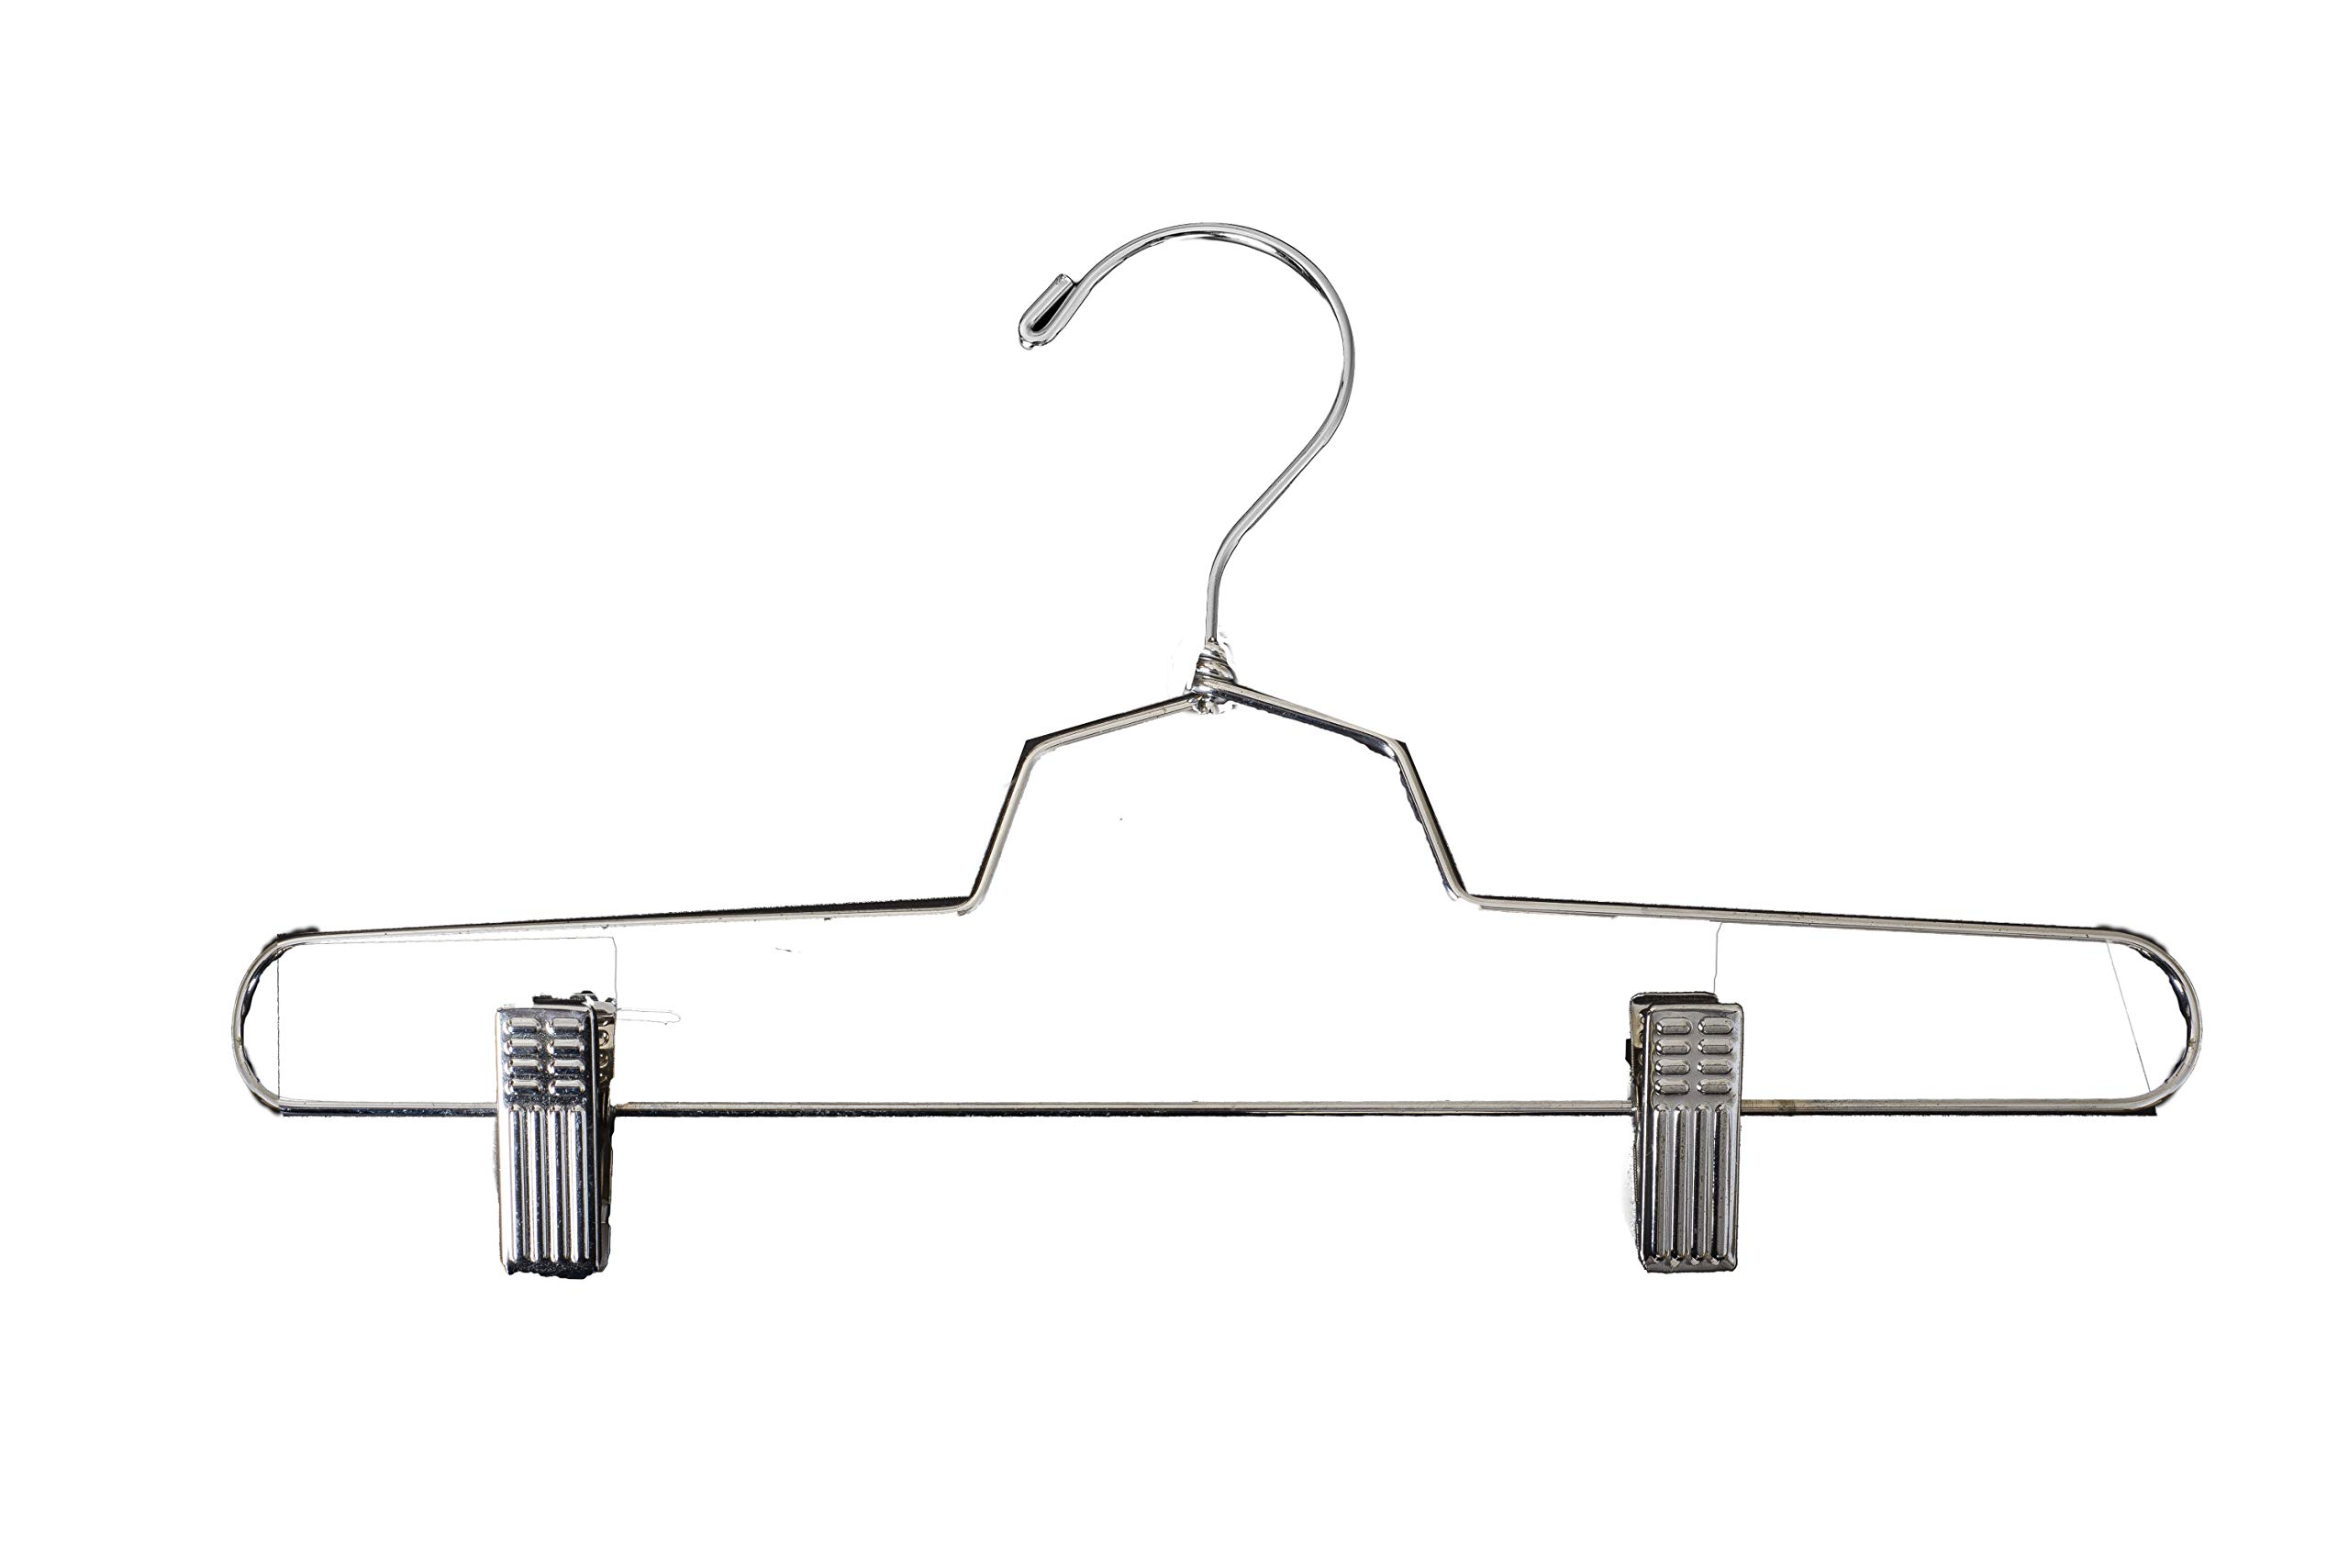 NAHANCO SLD-PANT Metal Pant Hangers, 14'', Chrome (Pack of 100) by NAHANCO